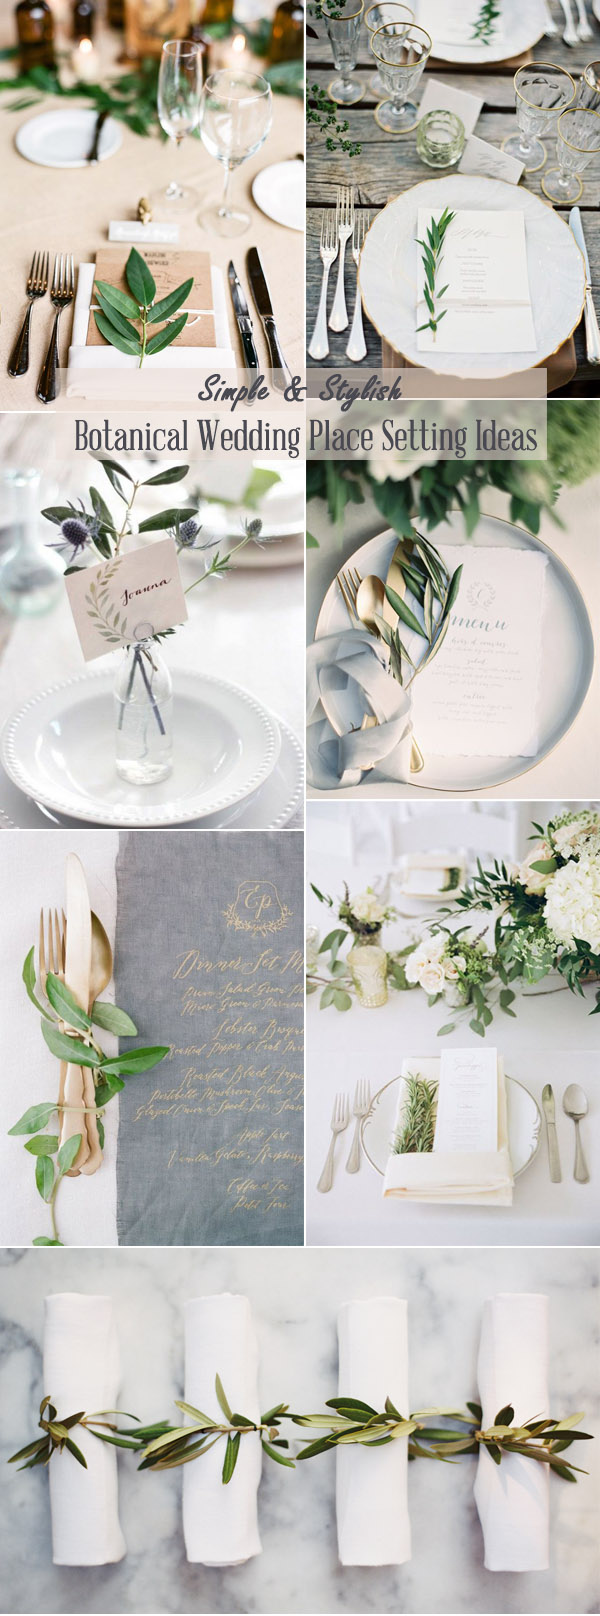 simple stylish botanical wedding place setting ideas & 2017 \u0026 2018 Trends-Easy Diy Organic Minimalist Wedding Ideas ...